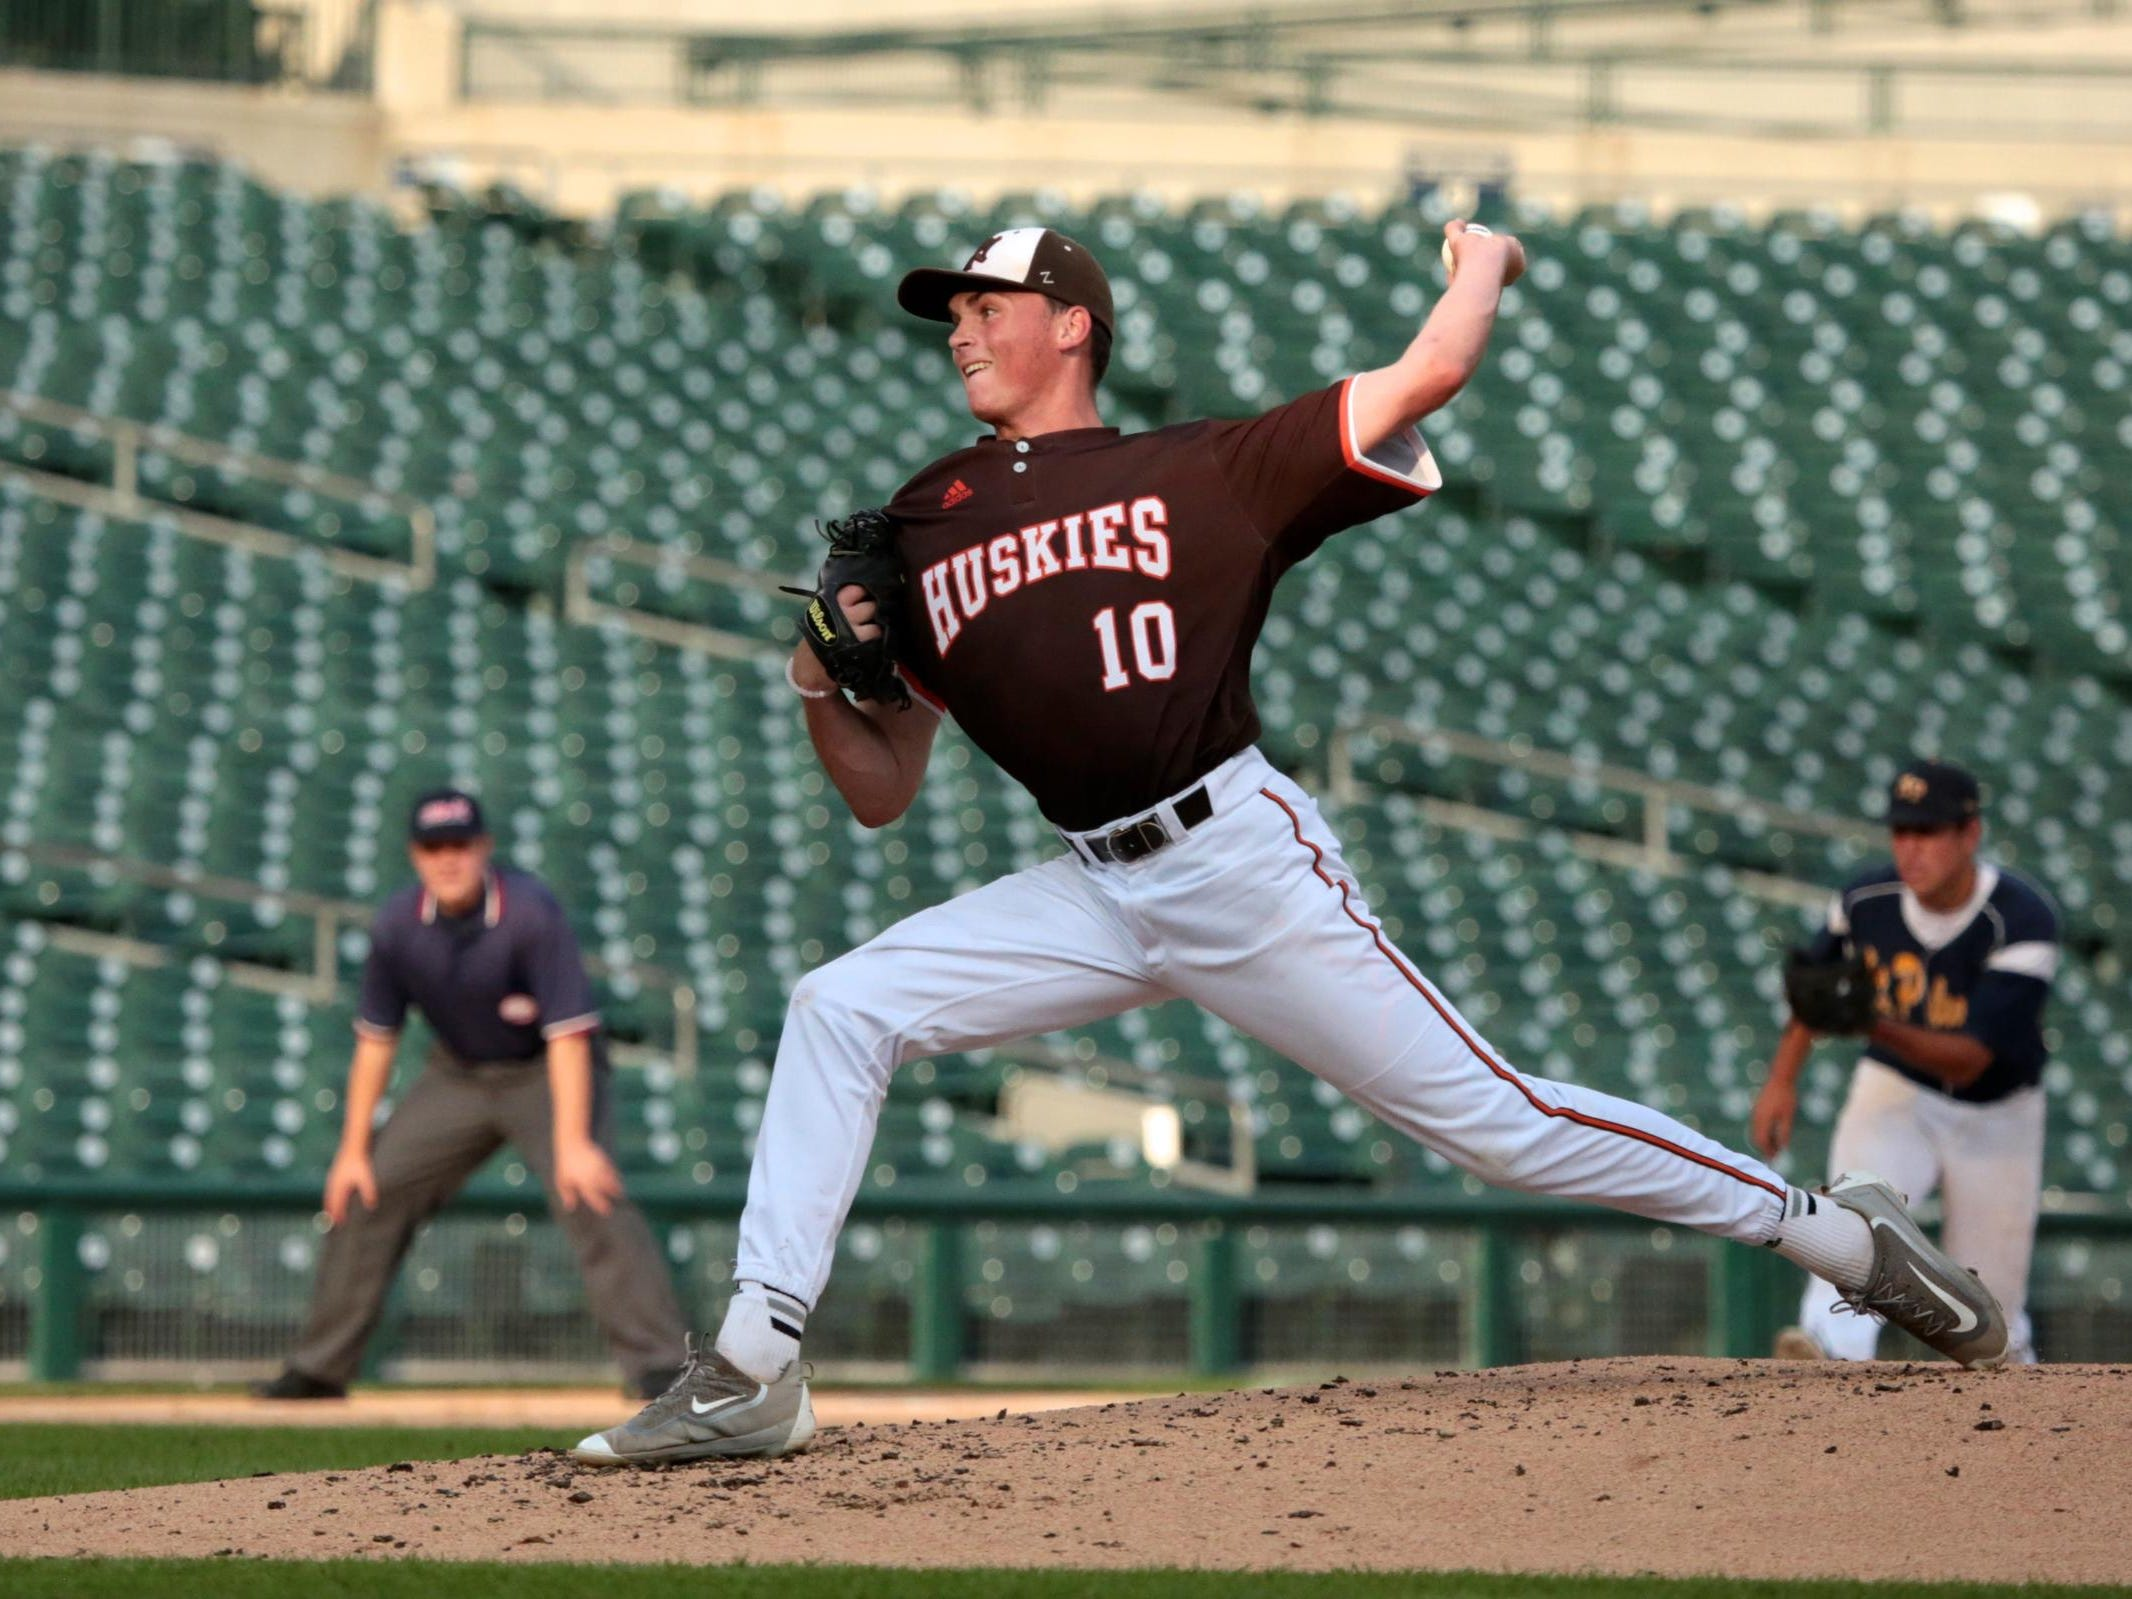 Portage Northern's Tommy Henry pitches during the Michigan High School Baseball Coaches Association All-Star Game on Wednesday at Comerica Park.